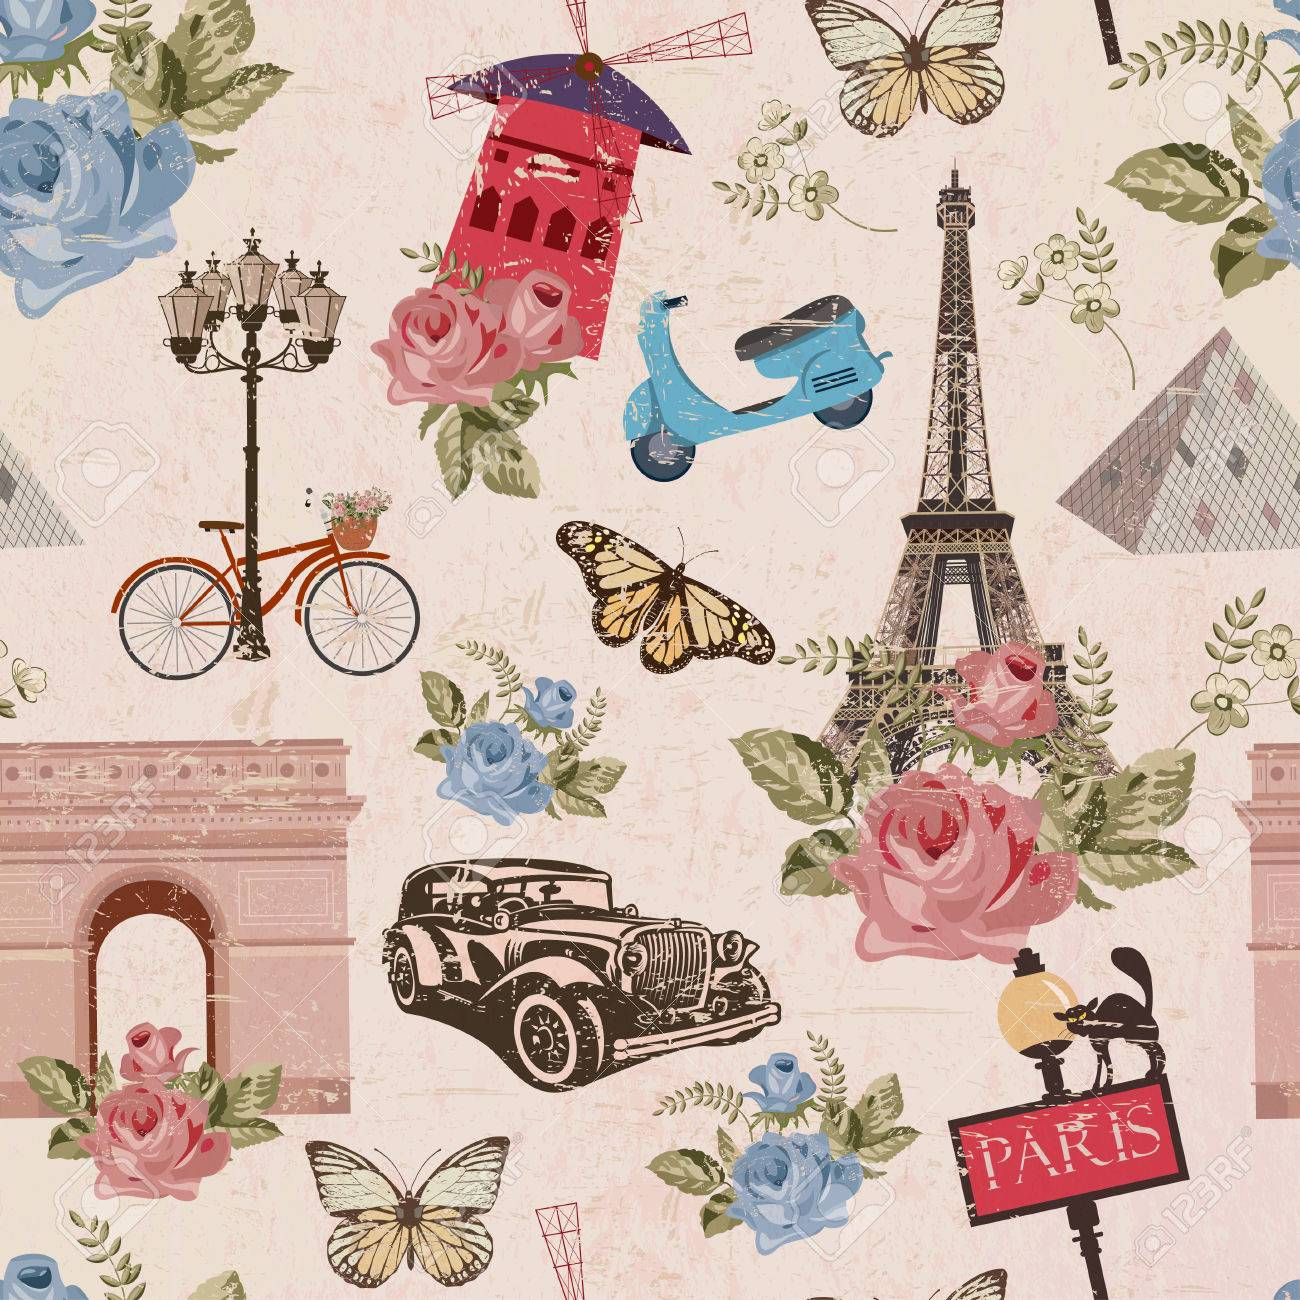 Seamless Paris Travel Wallpaper Vintage Background Royalty Free Cliparts Vectors And Stock Illustration Image 80926479